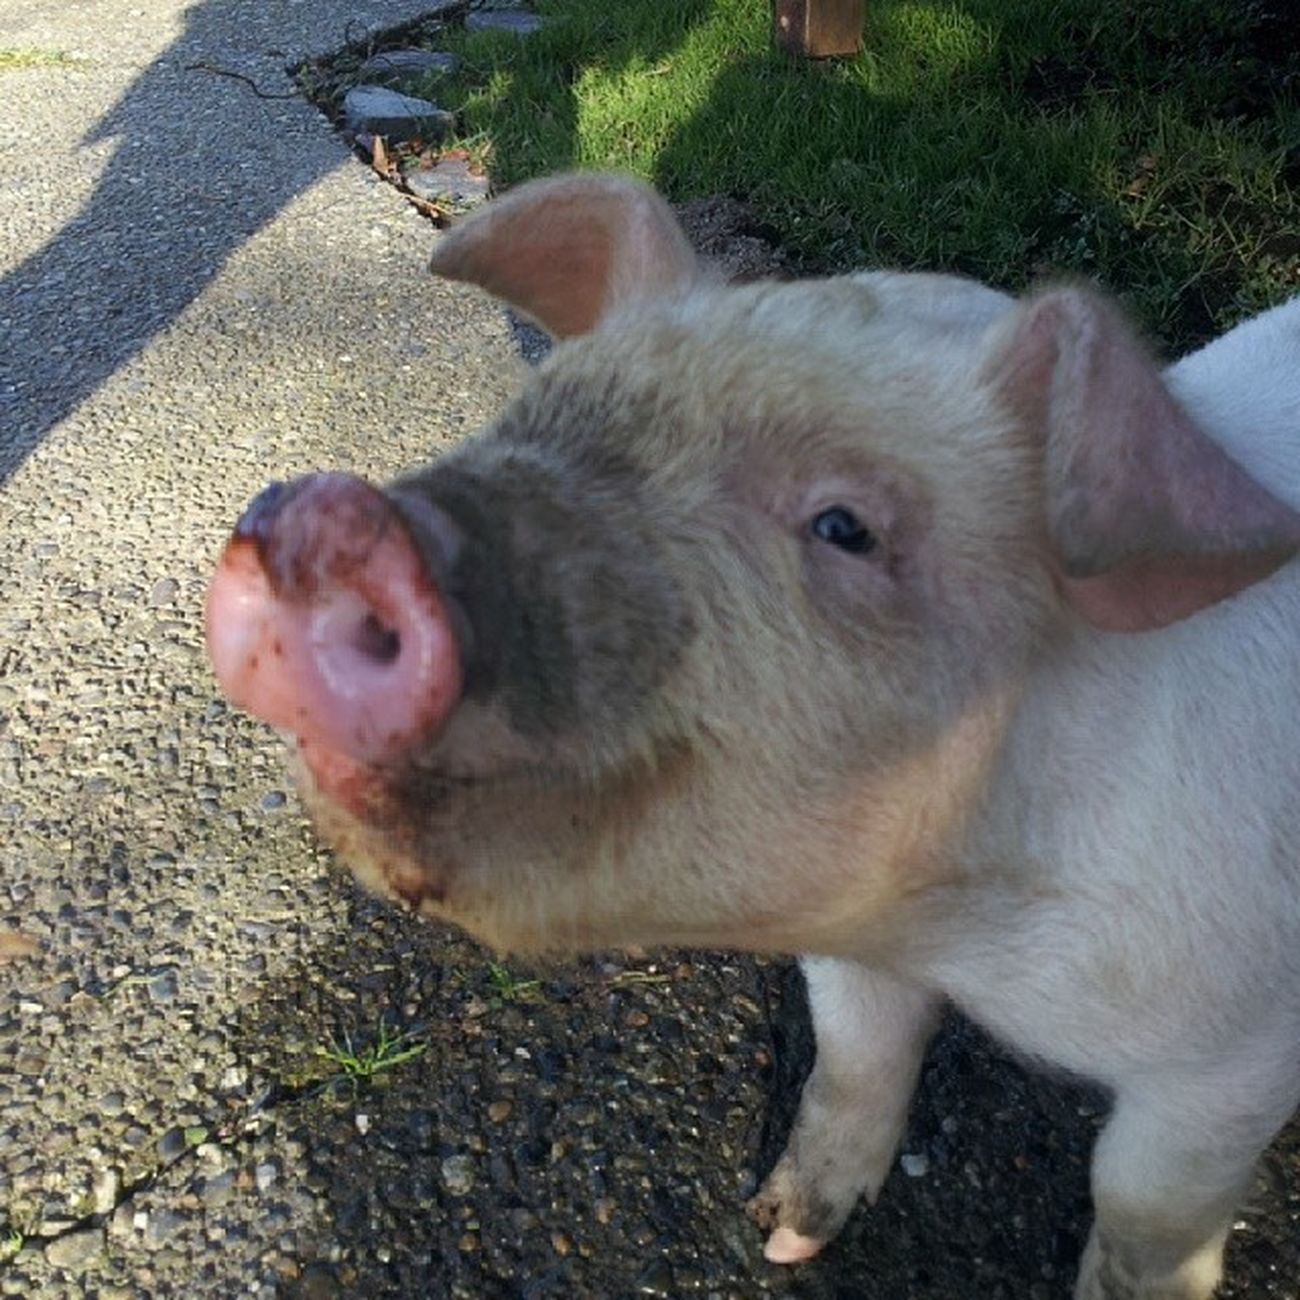 HarmonThePig Cheezin for the camera... BaconInTraining Oink squeal FarmanimalsForPets cutelittlepiggie